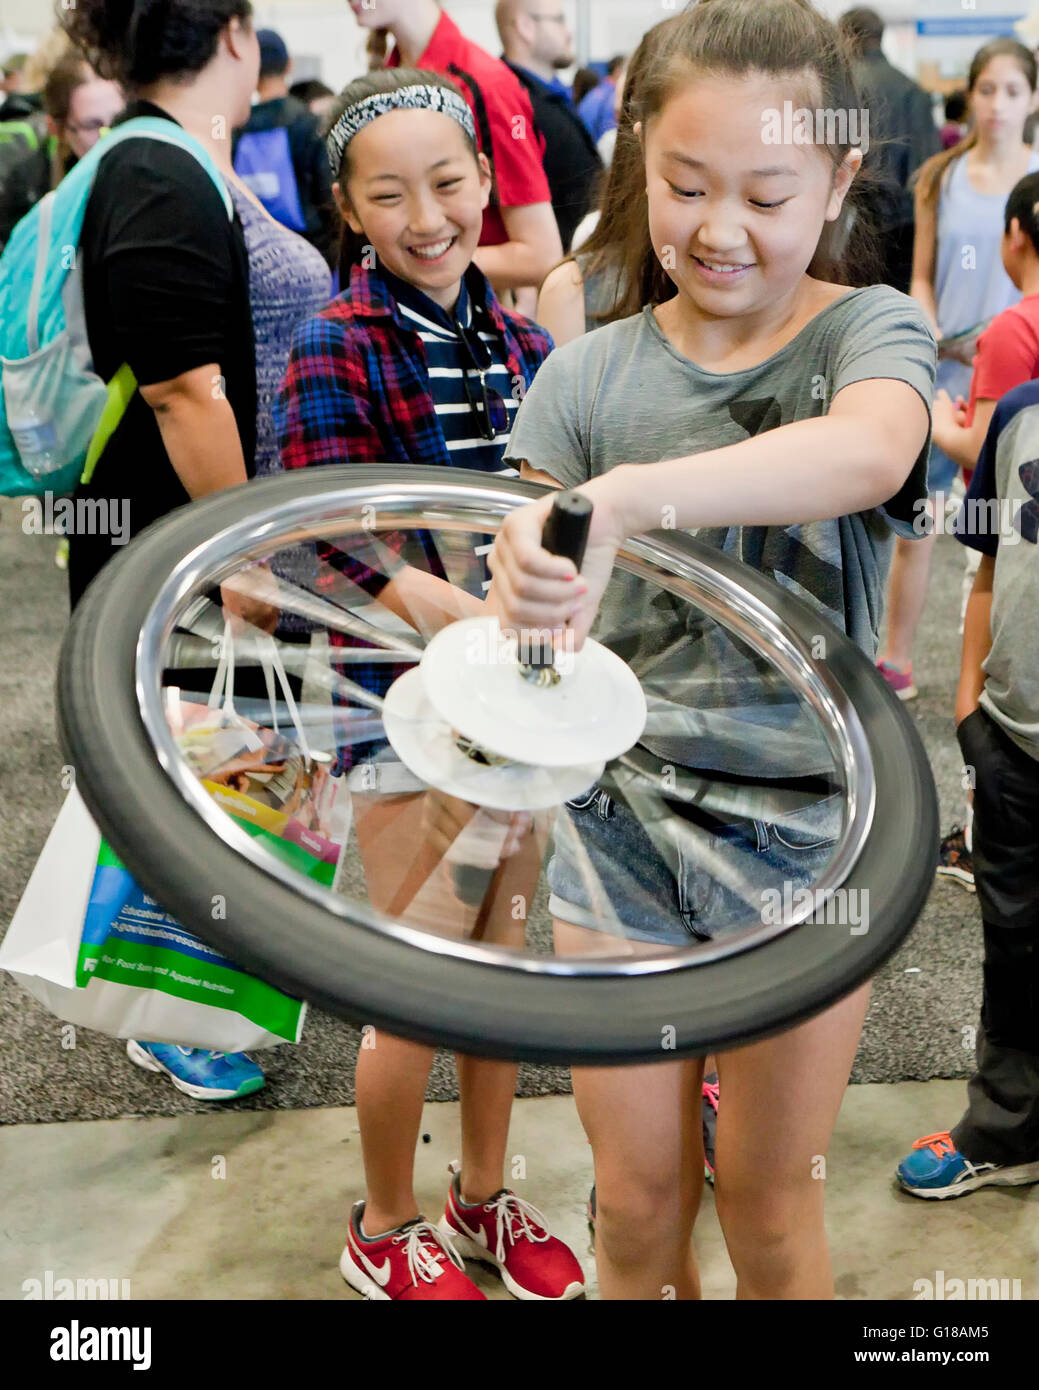 Young girl learning physics of gyroscope with a bicycle wheel at a science fair - USA - Stock Image